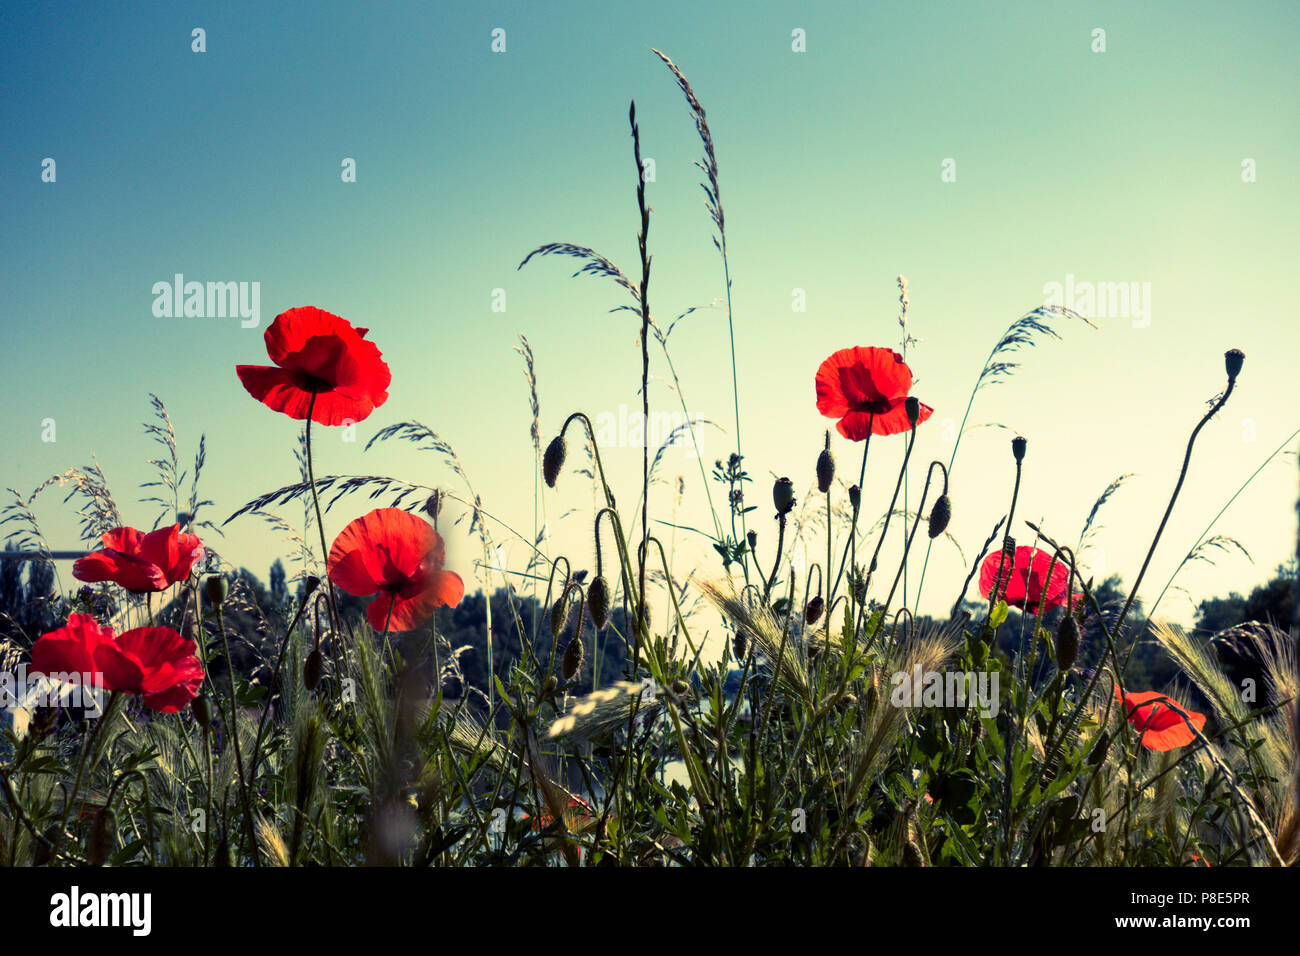 red poppies in a meadow, from below - Stock Image